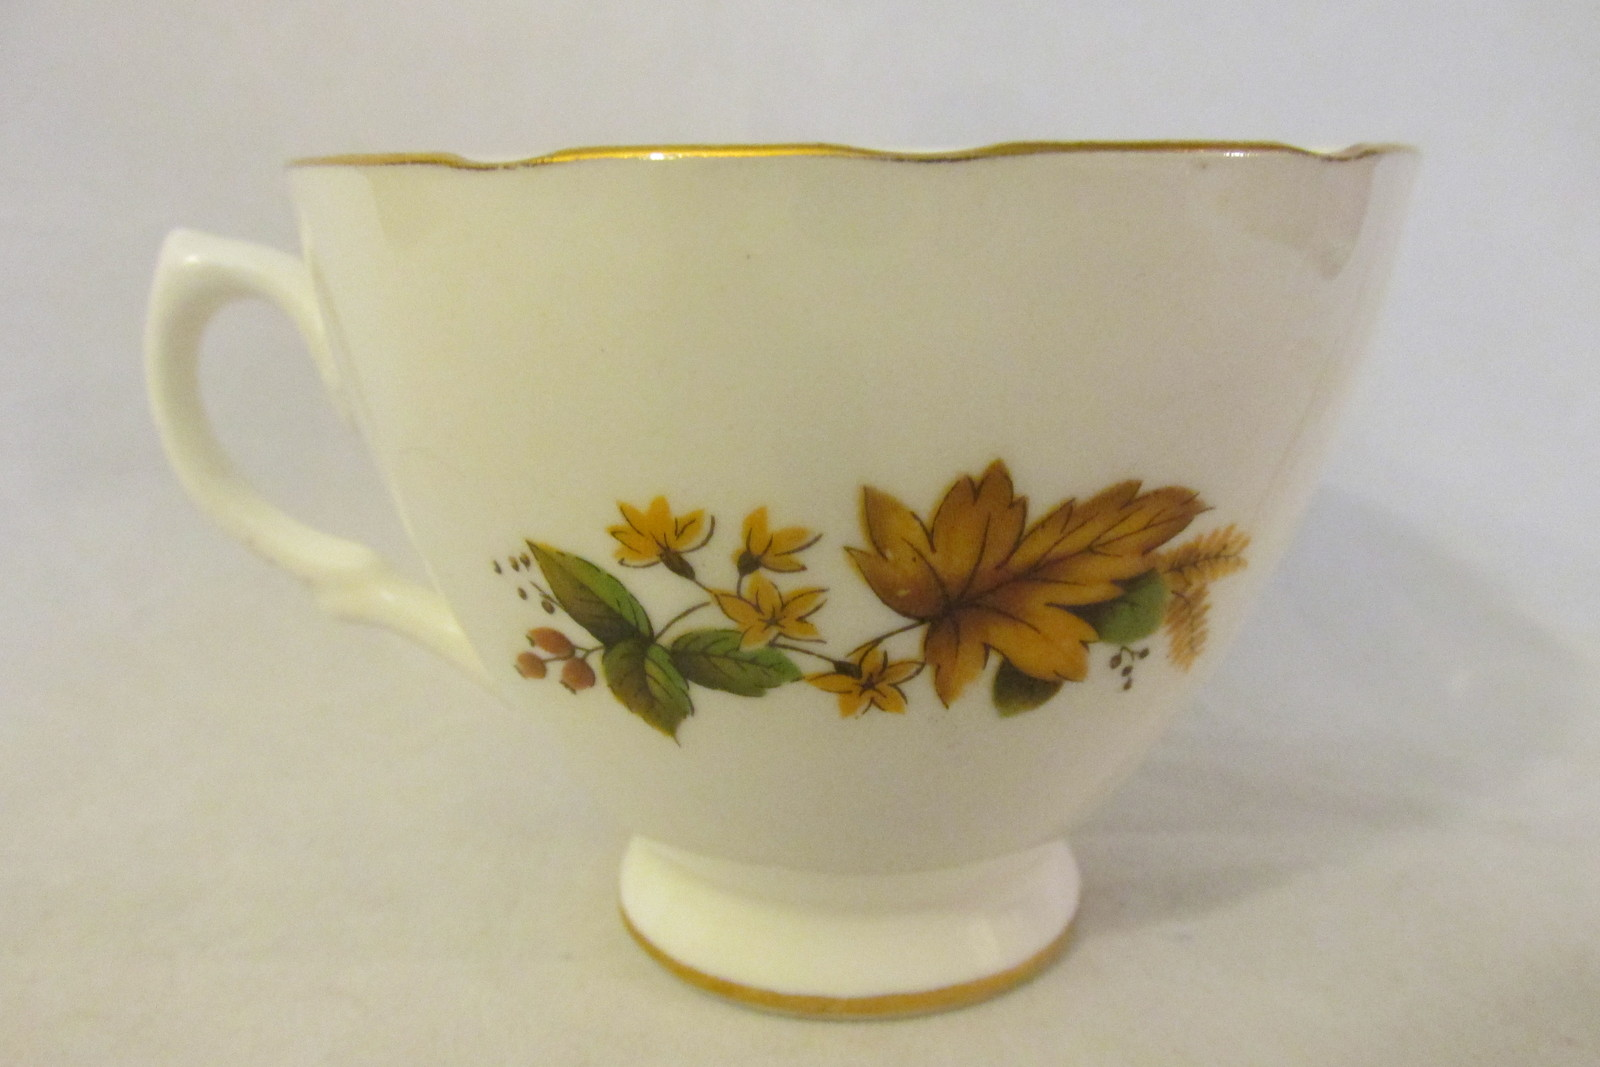 Vintage English Bone China Fall Leaves Pattern Cup & Saucer - Royal Vale, 1960s